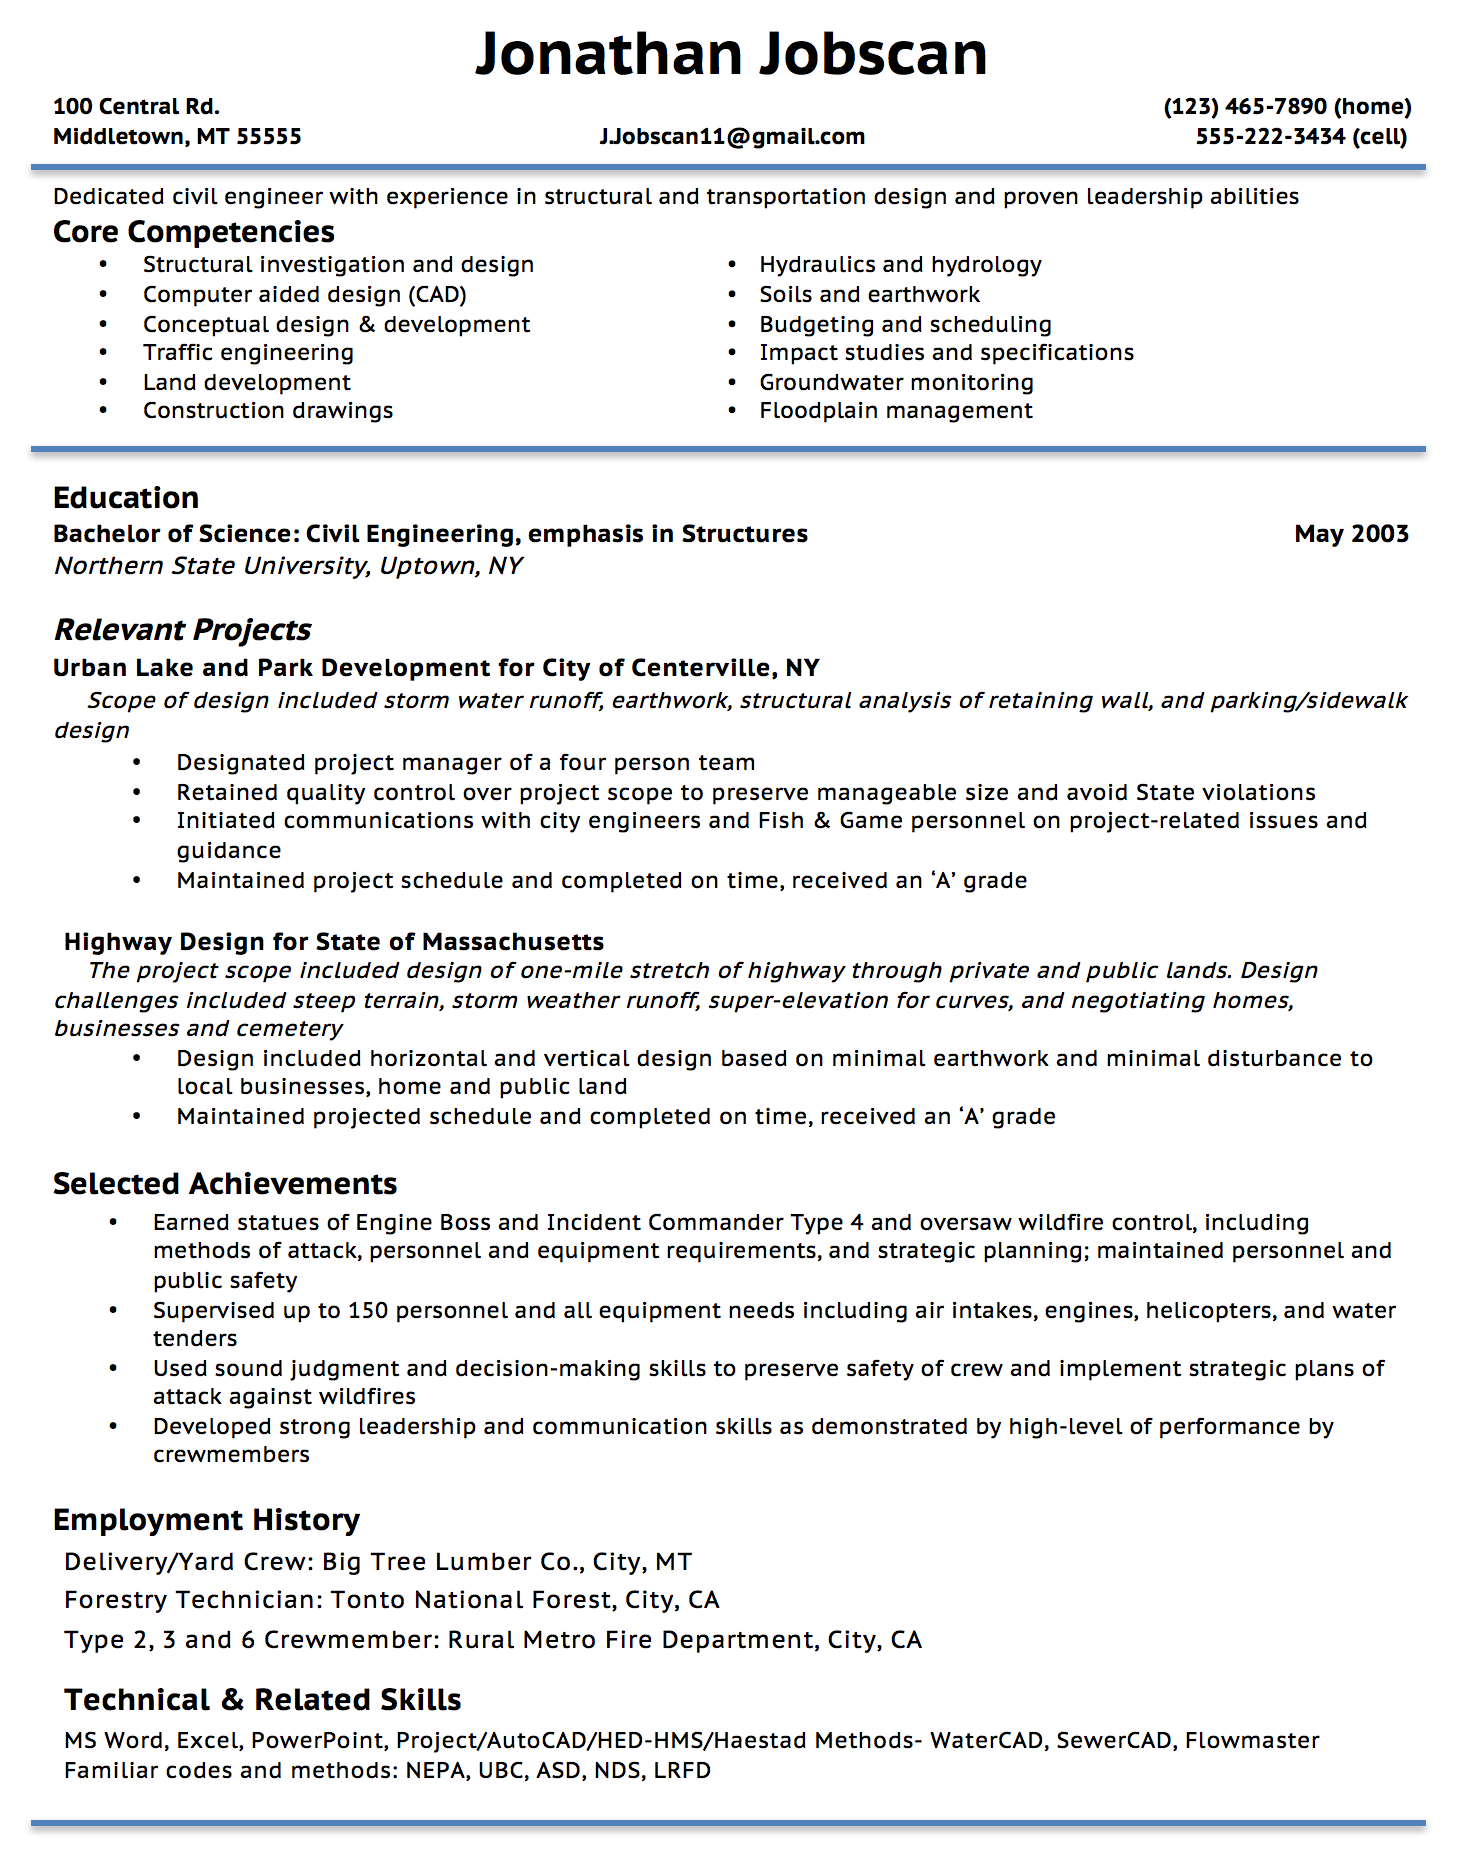 Opposenewapstandardsus  Fascinating Resume Writing Guide  Jobscan With Lovely Example Of A Functional Resume Format With Adorable Resume For Internship Also Objectives For A Resume In Addition Resume With No Work Experience And Resume Outlines As Well As Communication Skills Resume Additionally Sales Manager Resume From Jobscanco With Opposenewapstandardsus  Lovely Resume Writing Guide  Jobscan With Adorable Example Of A Functional Resume Format And Fascinating Resume For Internship Also Objectives For A Resume In Addition Resume With No Work Experience From Jobscanco